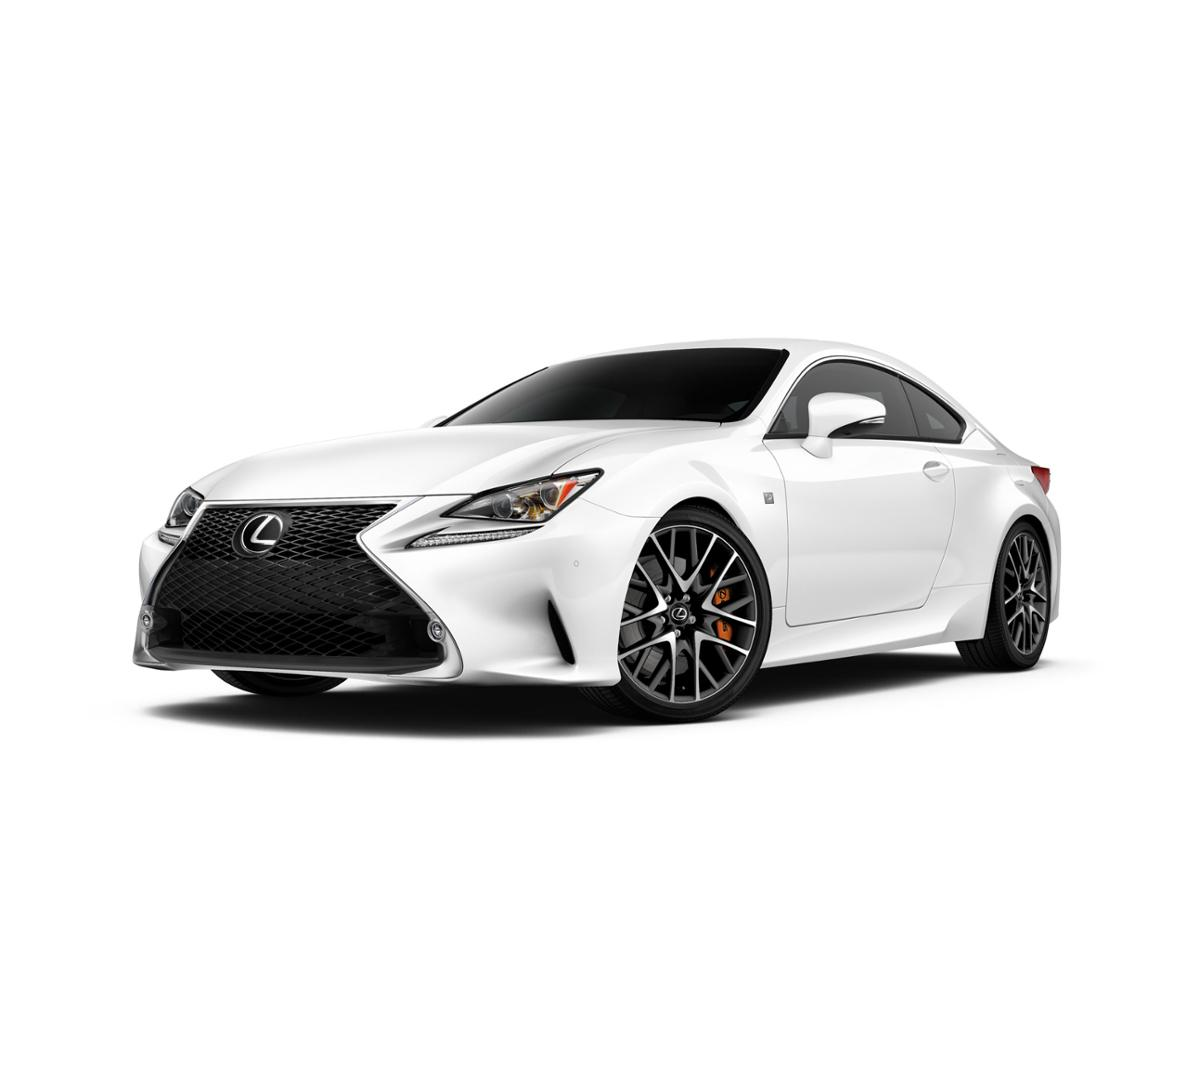 2018 Lexus RC 300 Vehicle Photo in Santa Monica, CA 90404